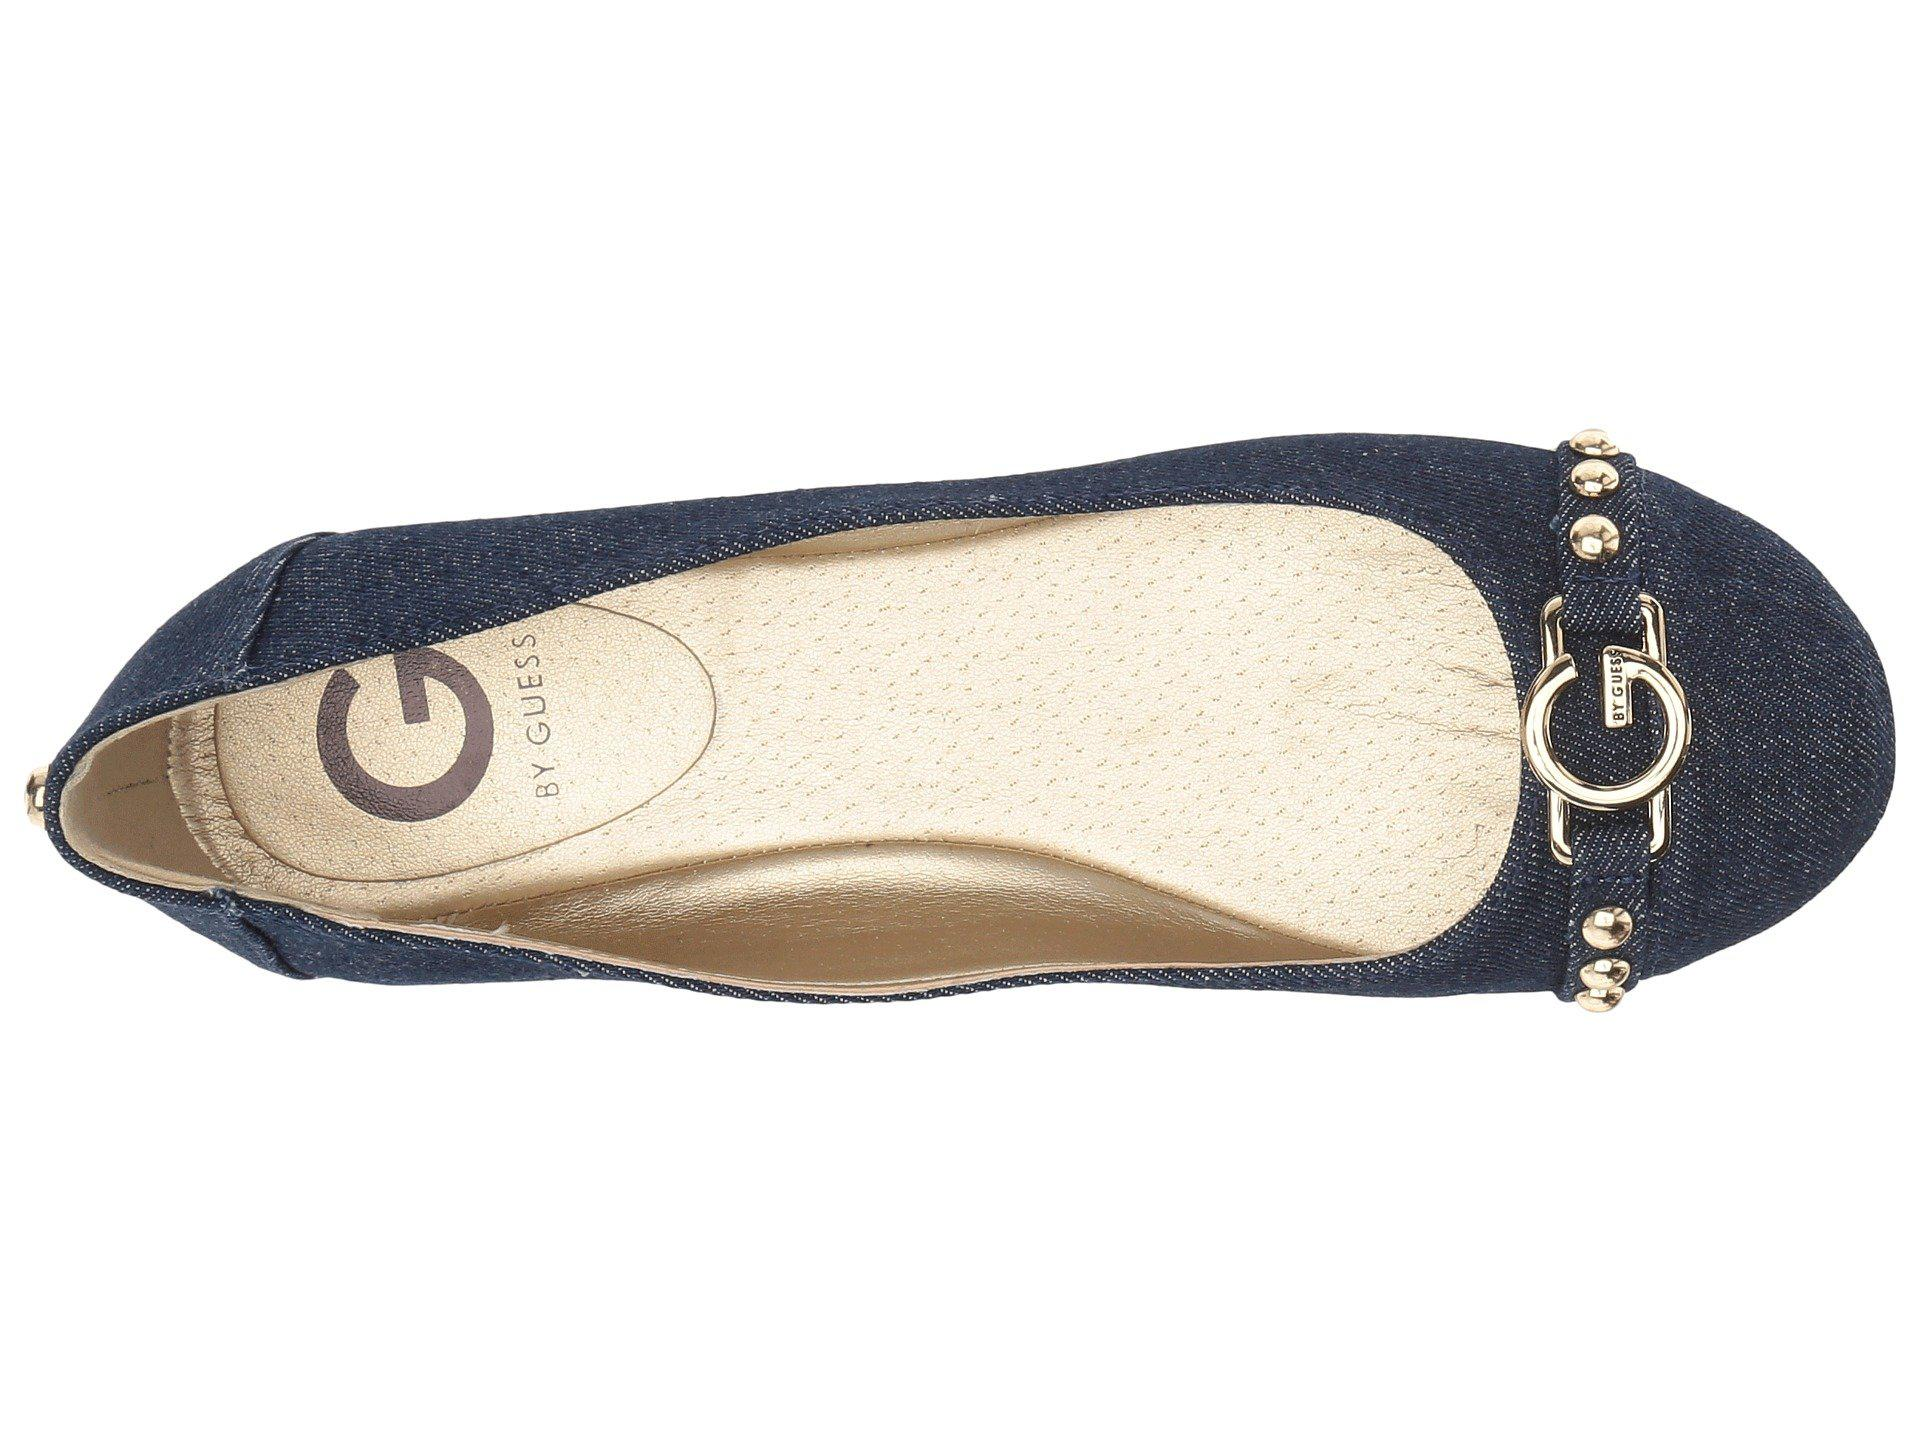 G by GUESS Finland OH5Ajosk